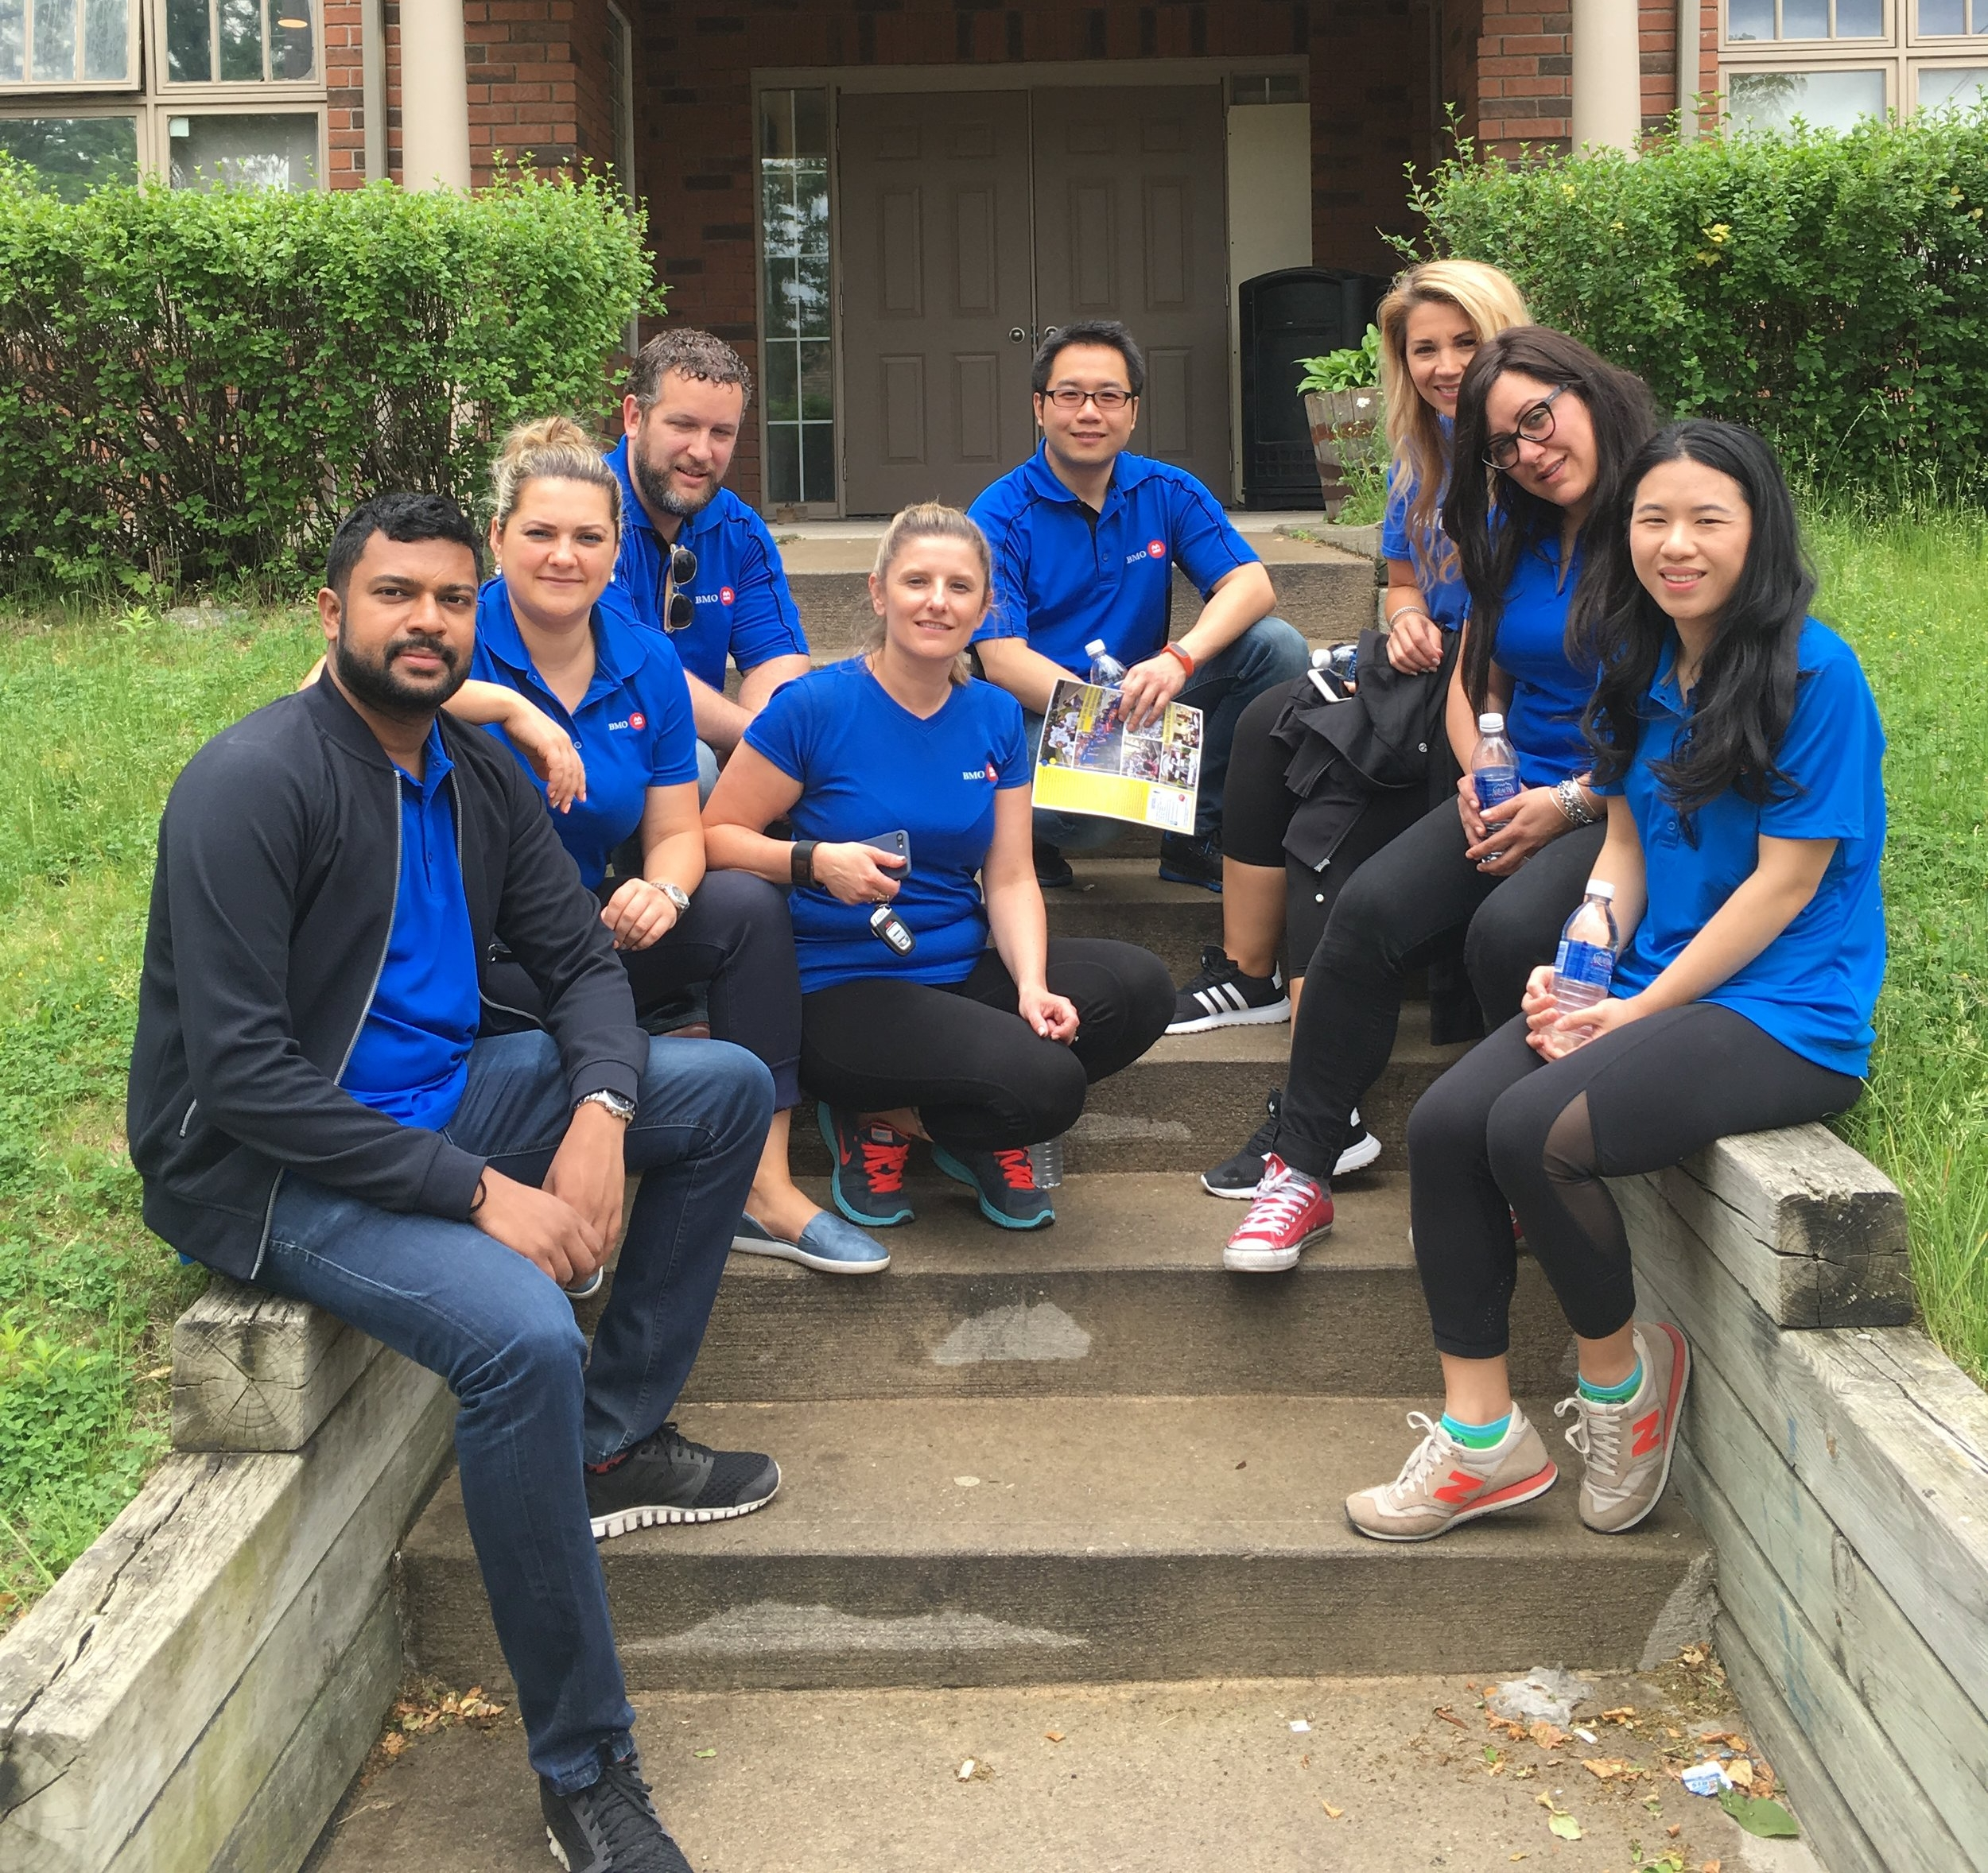 BMO Volunteers June 13 3.JPG